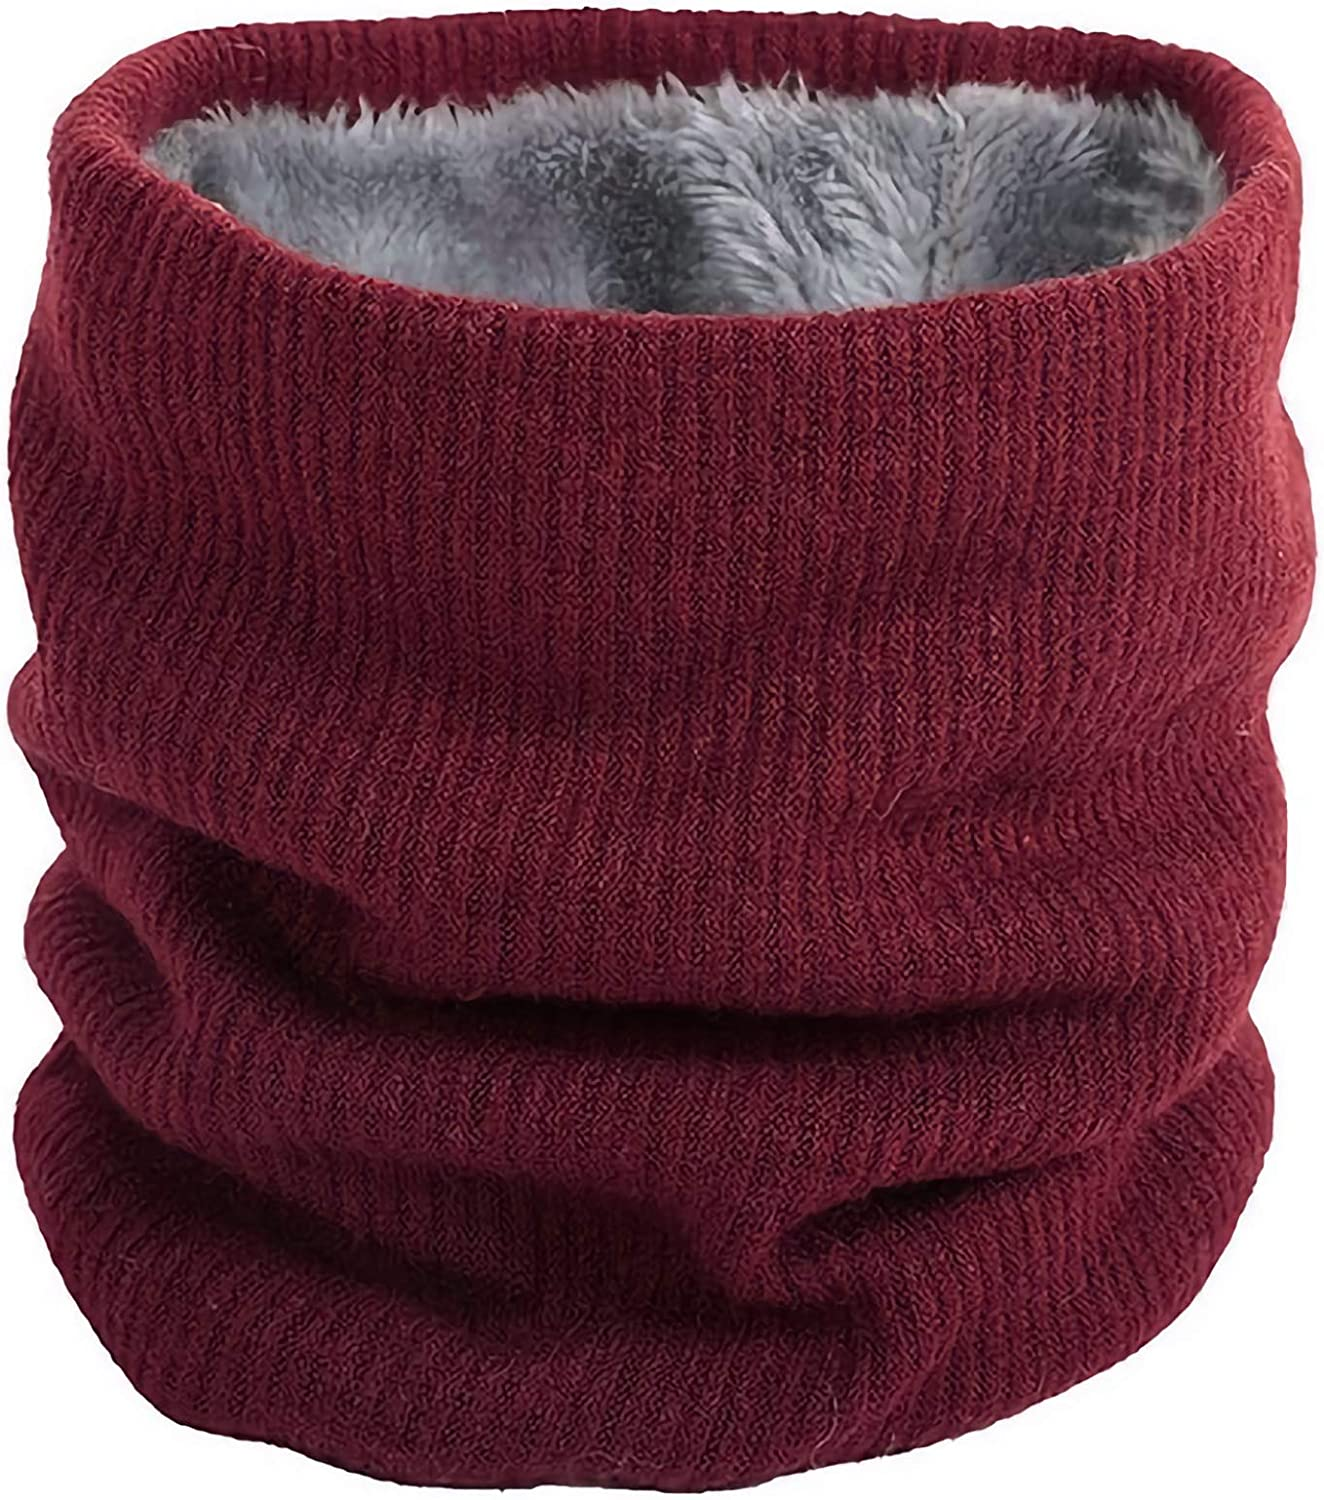 Winter Neck Warmer Fleece Lined Infinity Scarf Thick Thermal Windproof Unisex Men Women Warm Soft and Comfortable Double-Layer